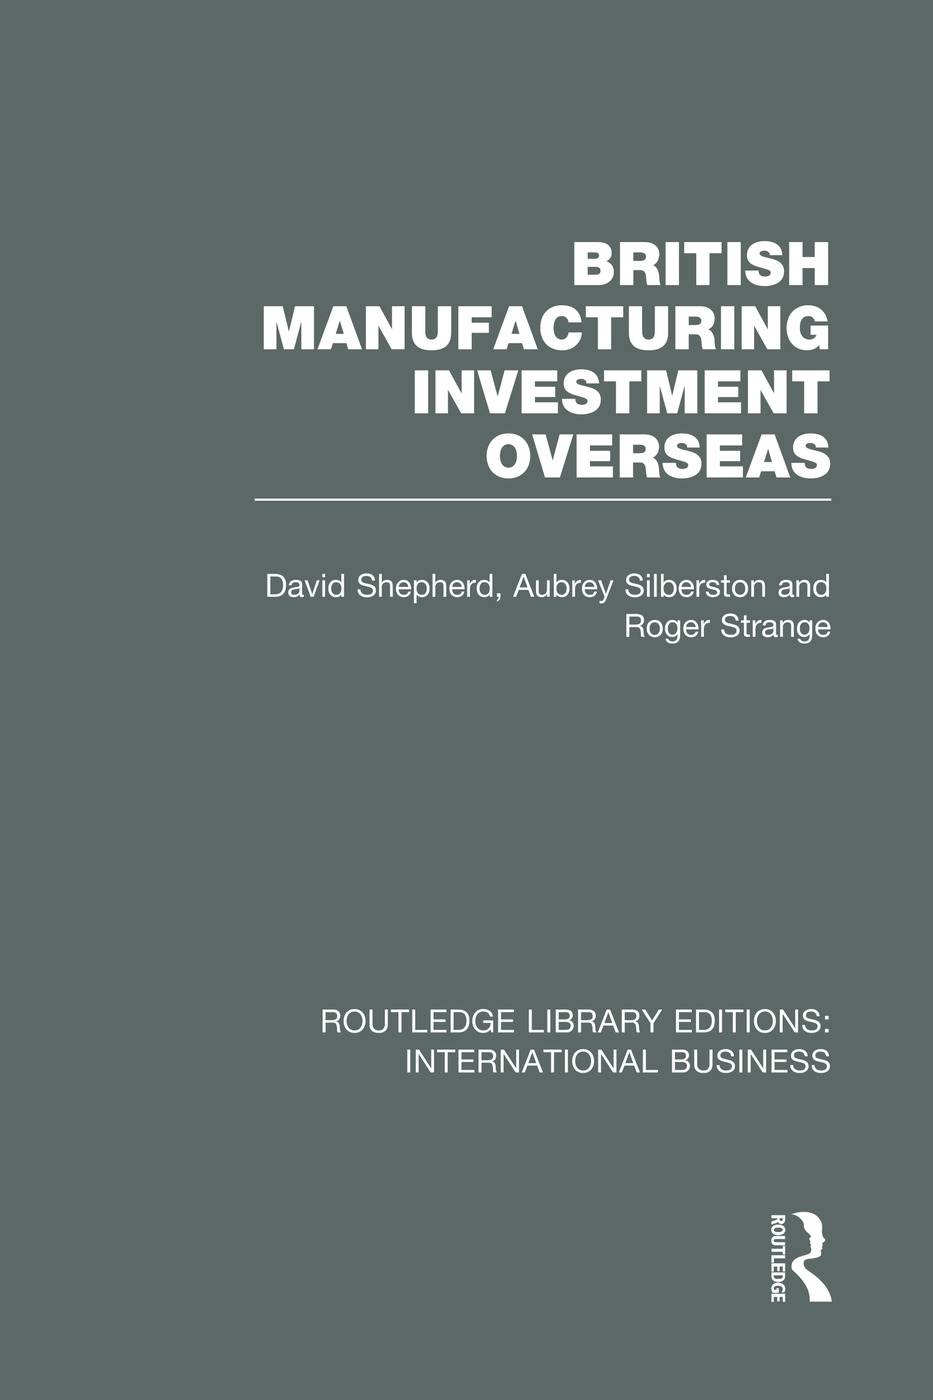 British Manufacturing Investment Overseas (RLE International Business) book cover